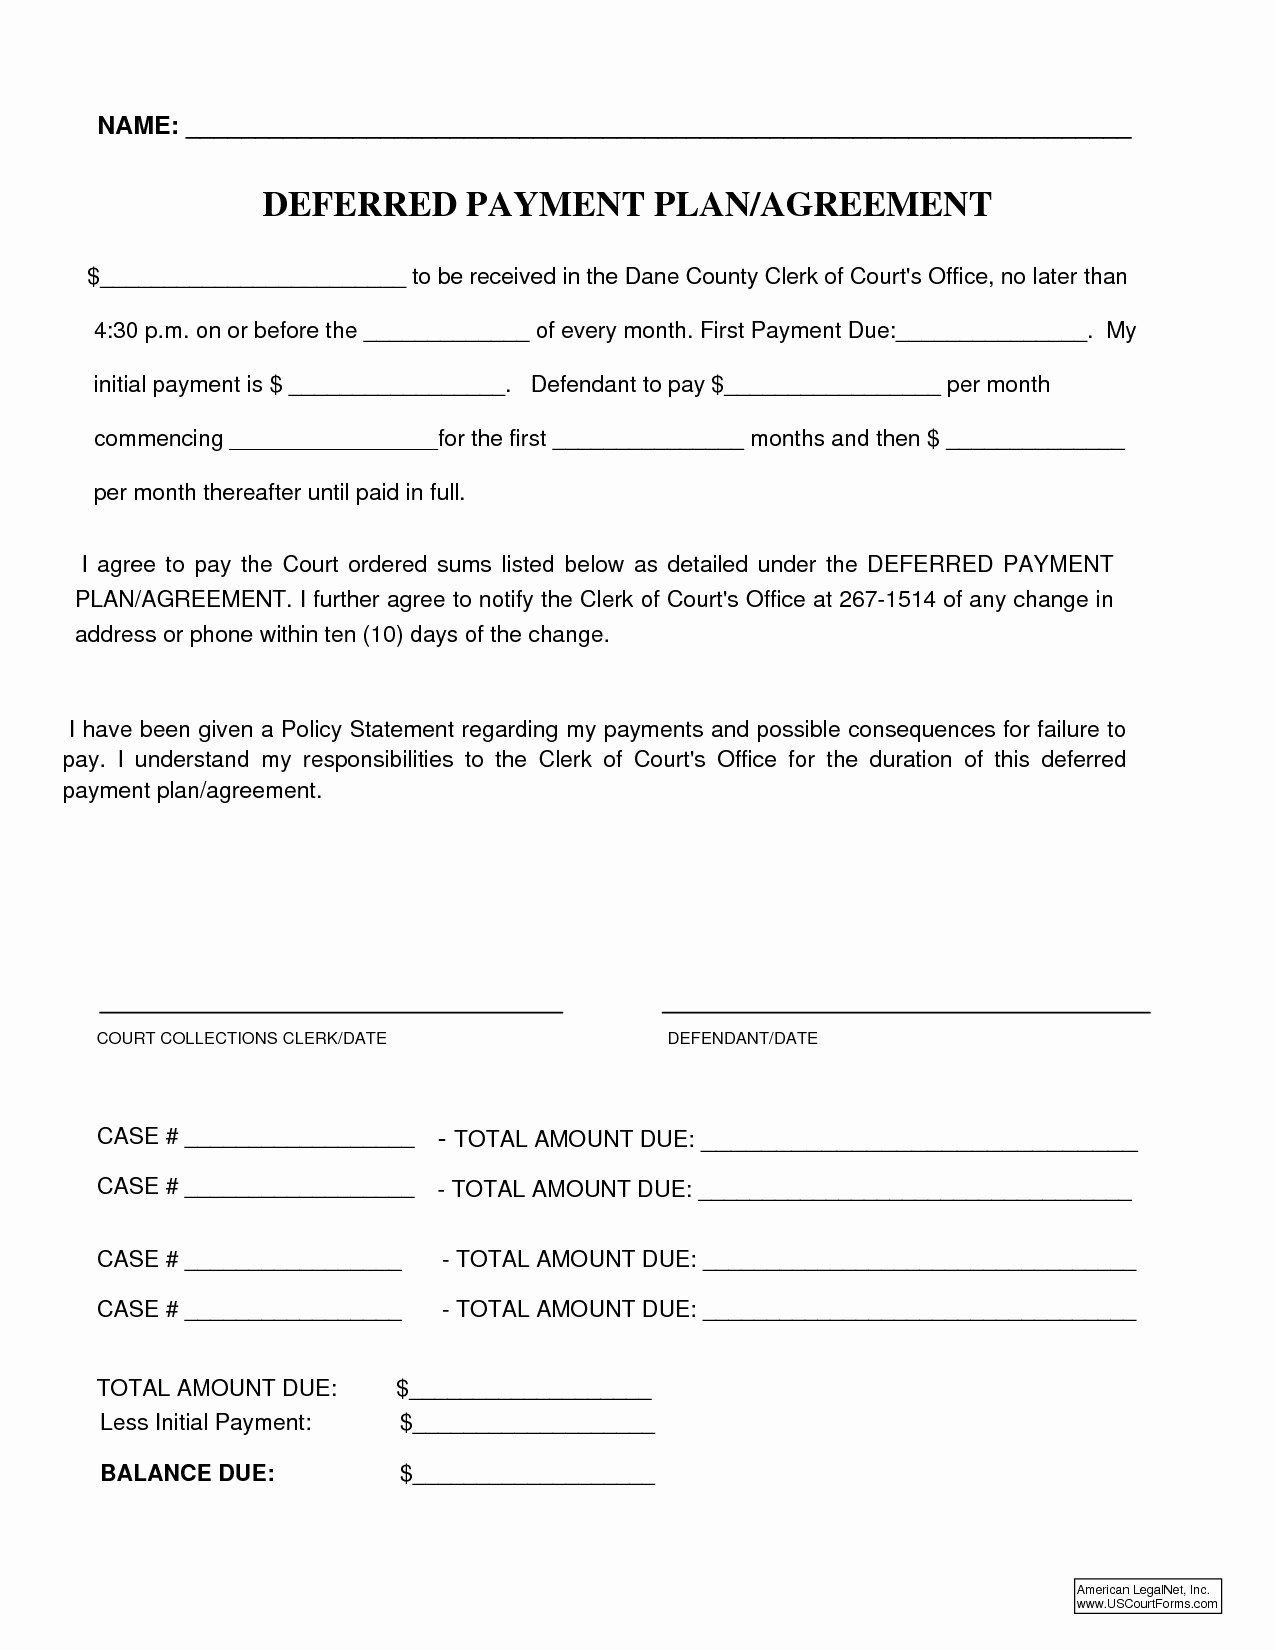 Monthly Payment Plan Template Lovely 10 Best Of Payment Plan Agreement form Editable